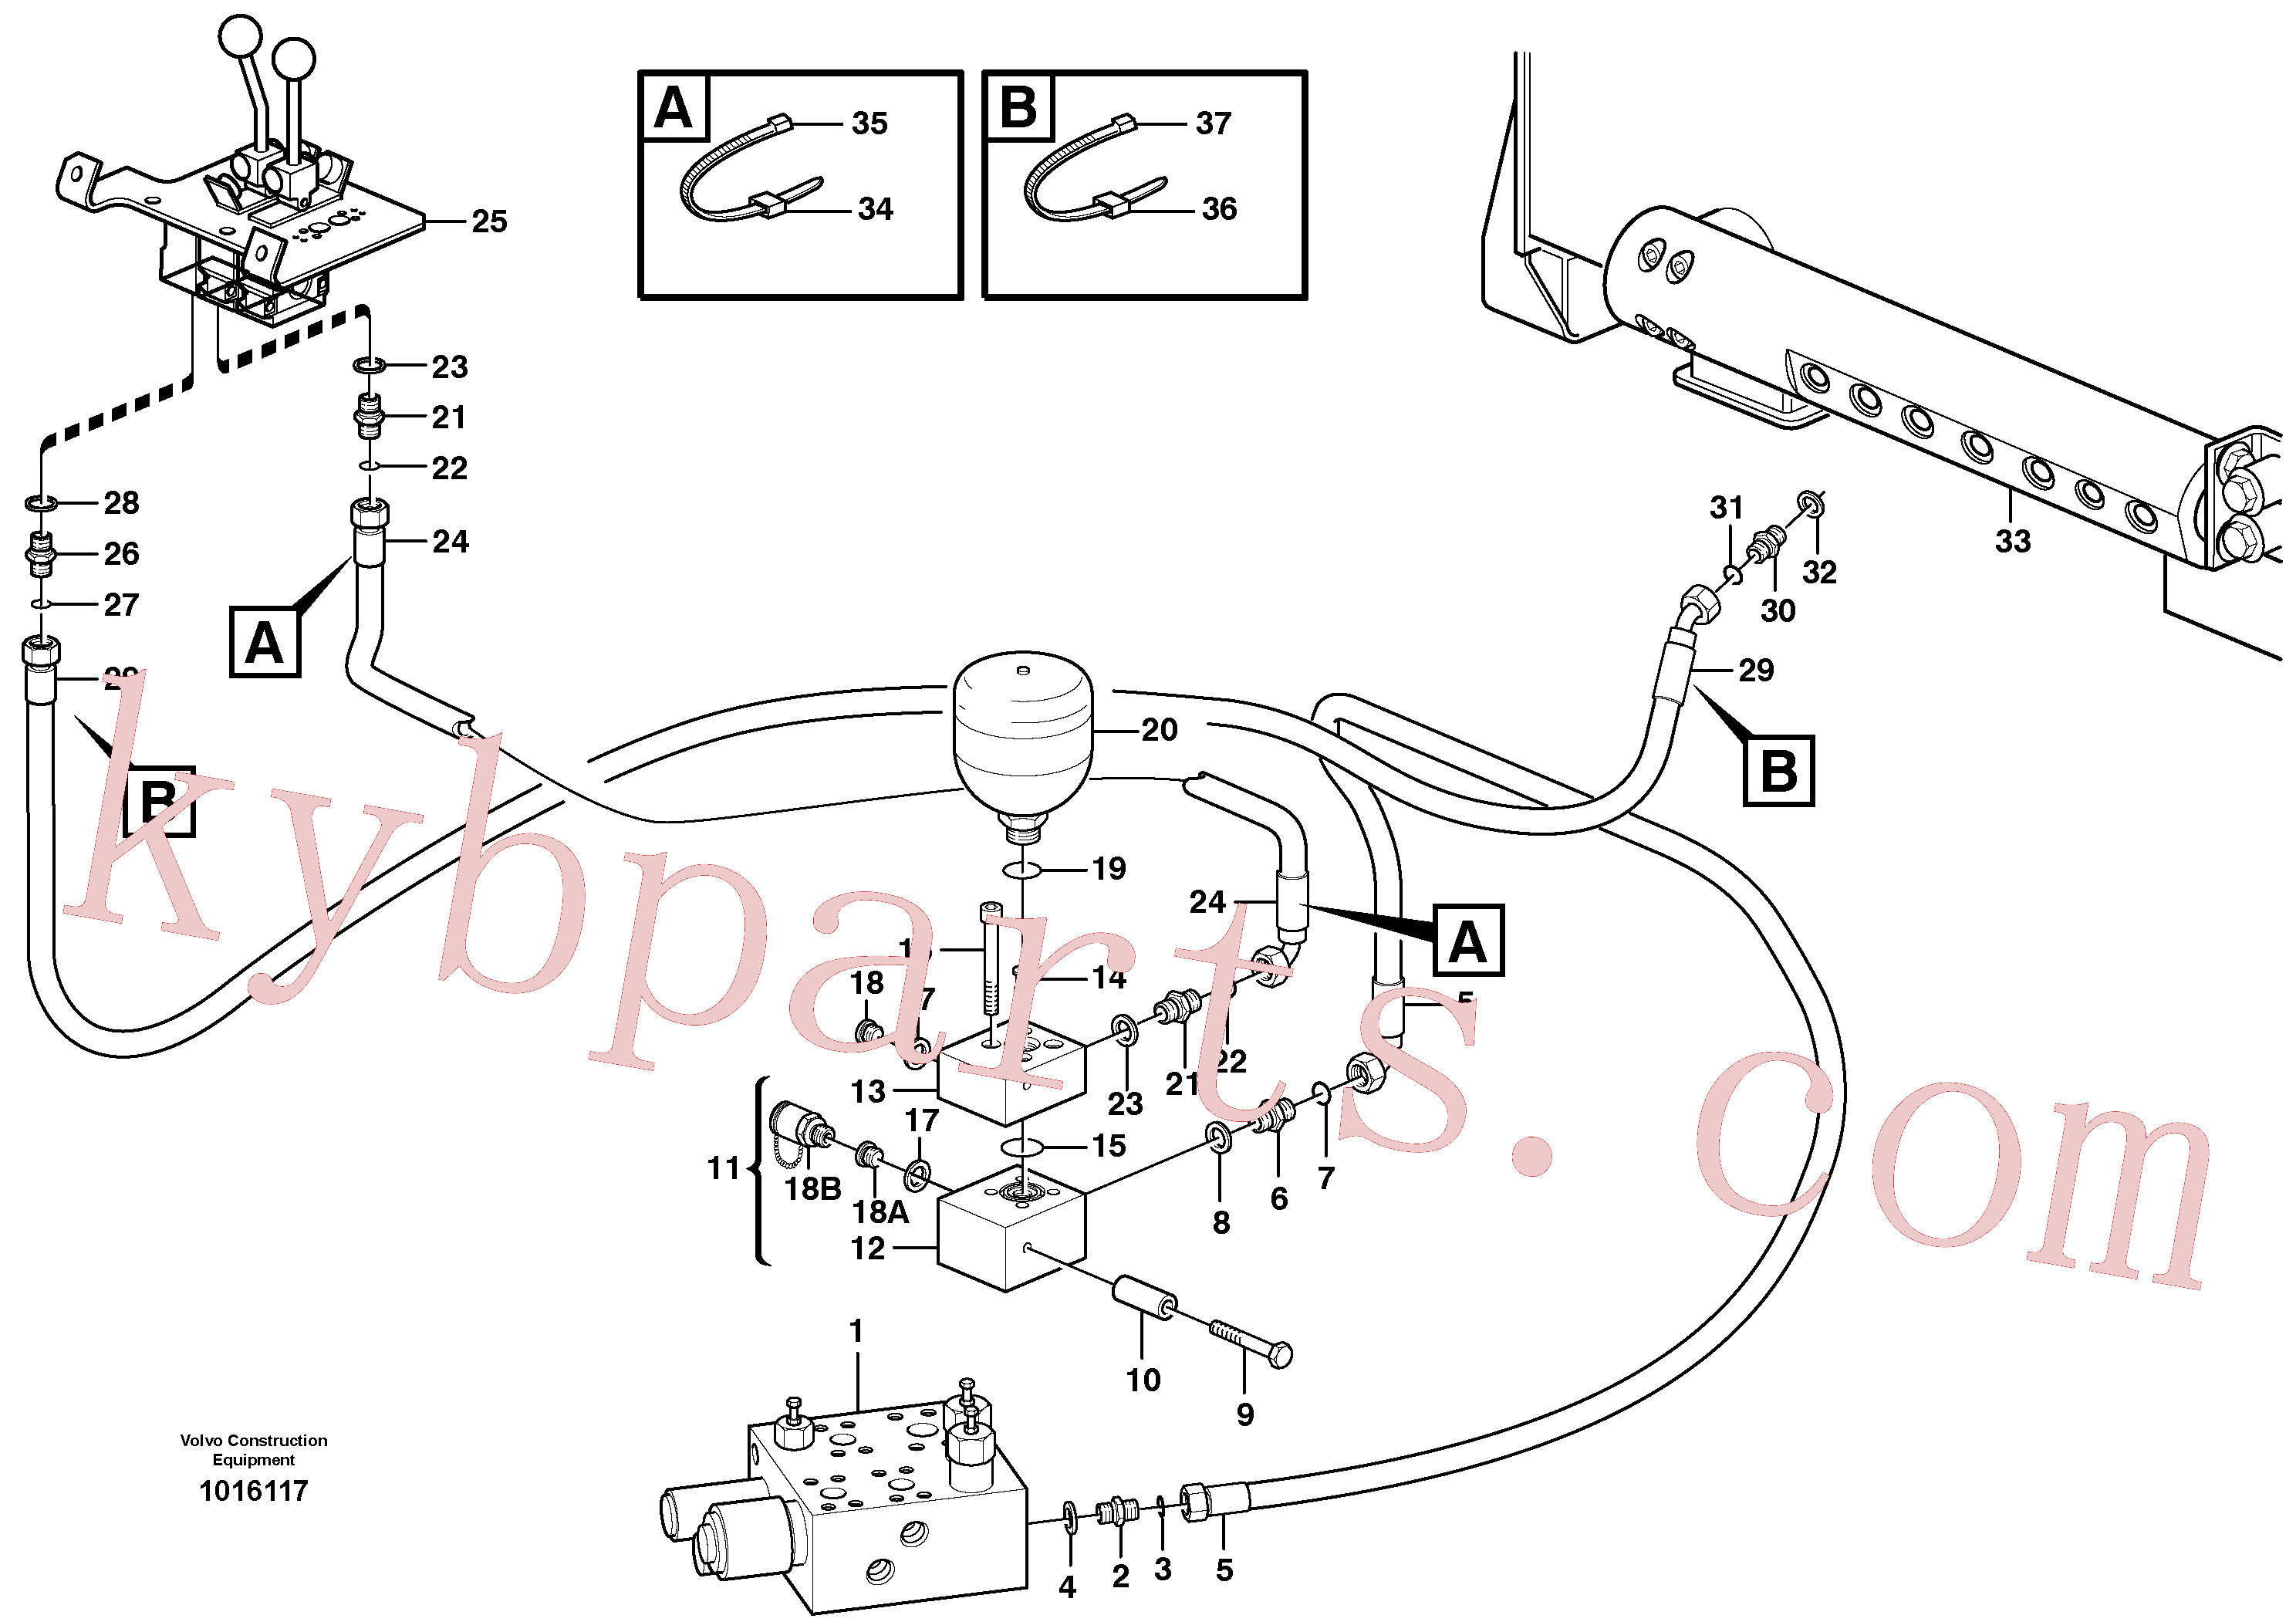 VOE13933985 for Volvo Servo - hydraulic, feed and return lines(1016117 assembly)